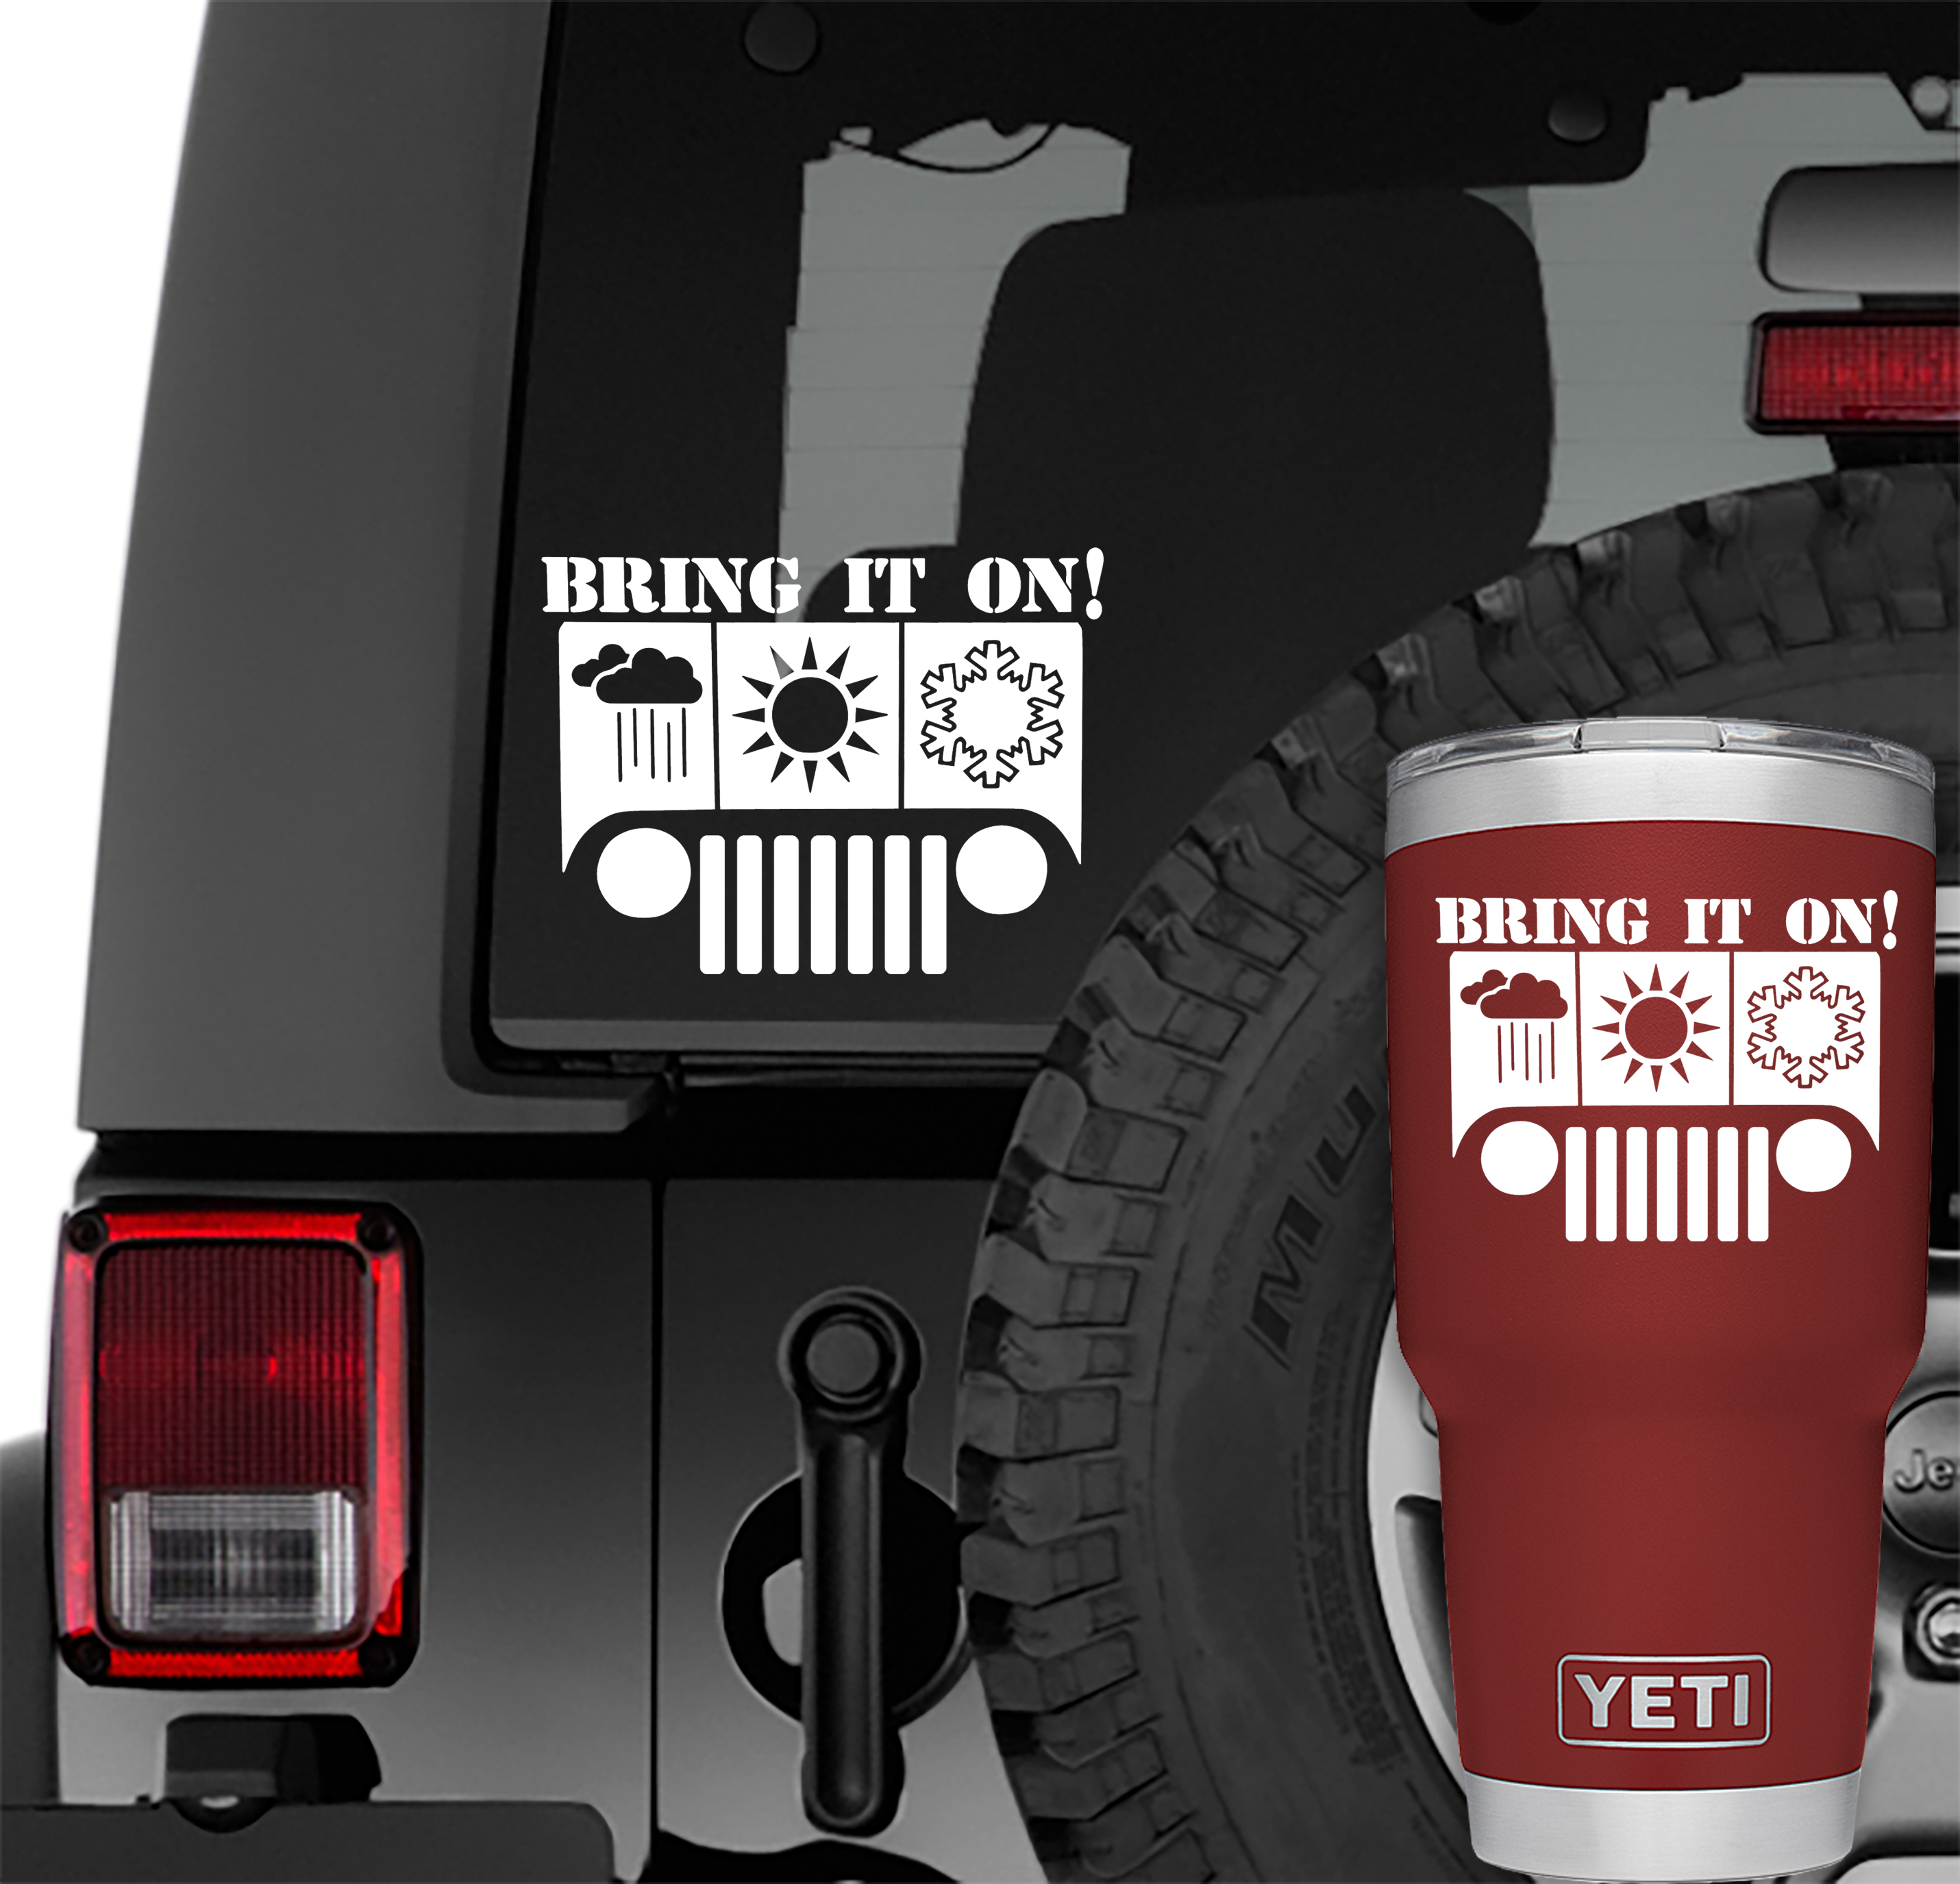 All Season Bring It On Vinyl Decal